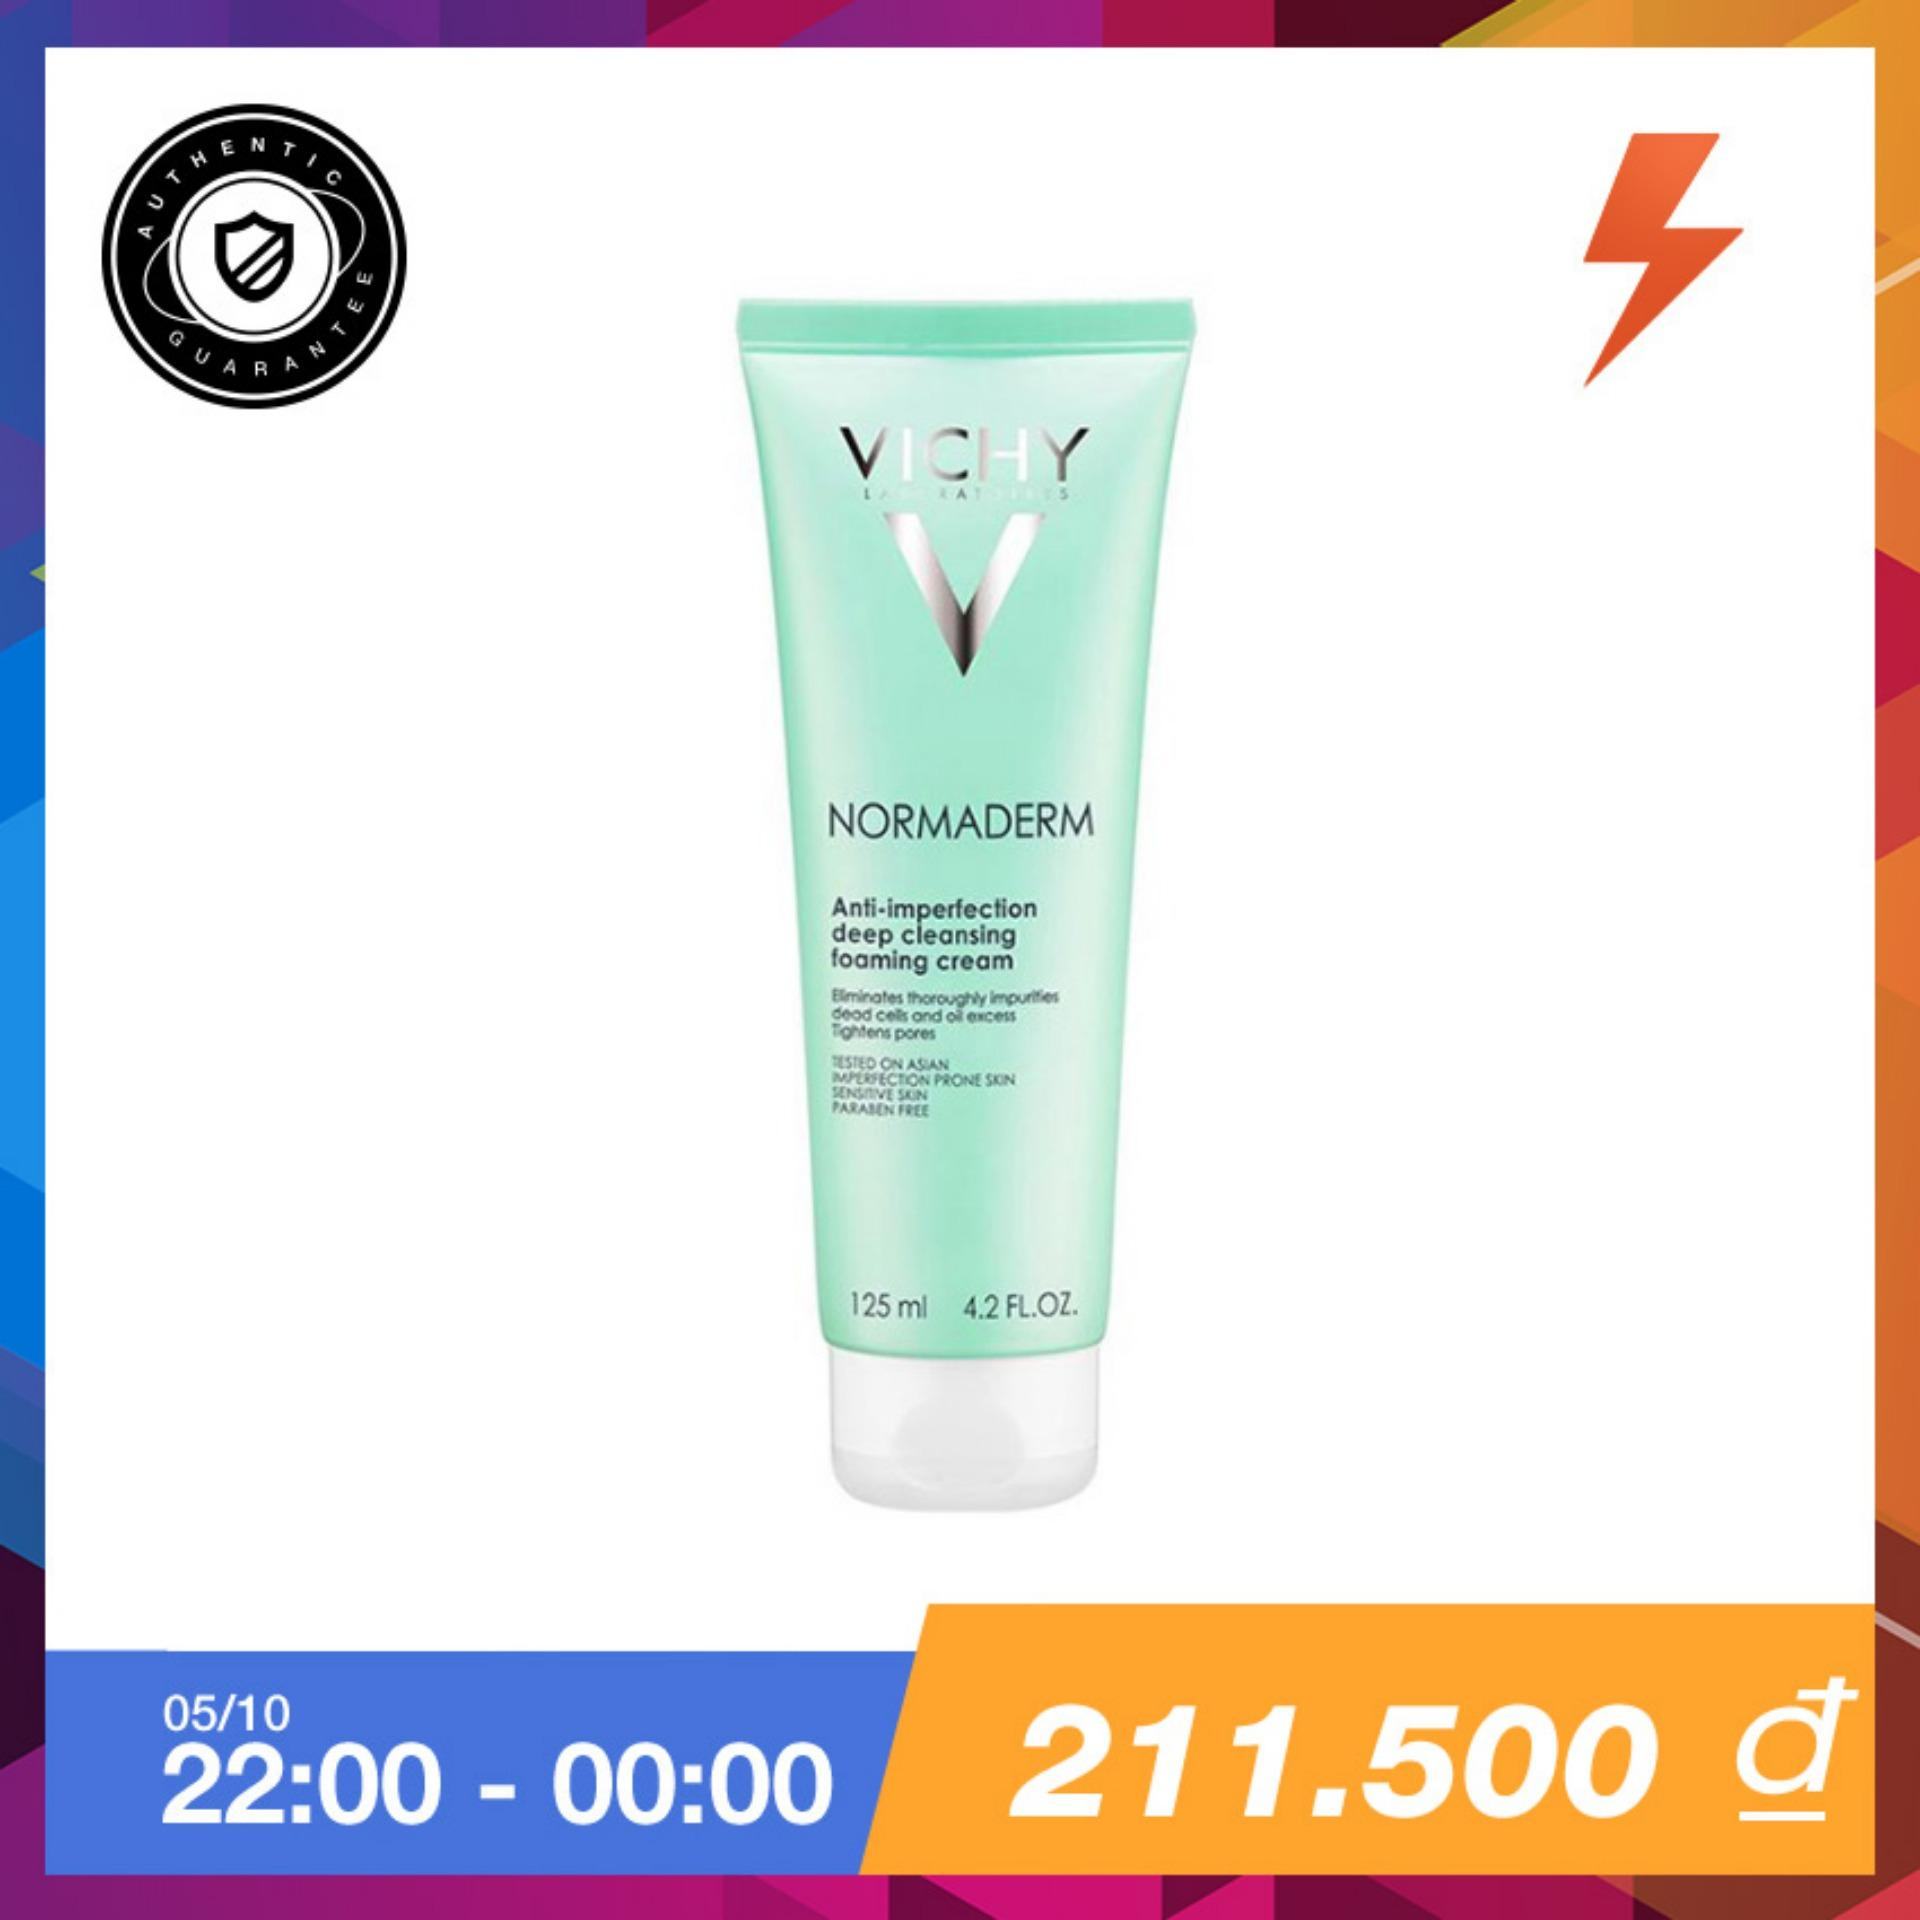 Sữa Rửa Mặt Ngăn Ngừa Mụn Vichy Normaderm Anti Imperfection Deep Cleansing Foaming Cream 125Ml Rẻ